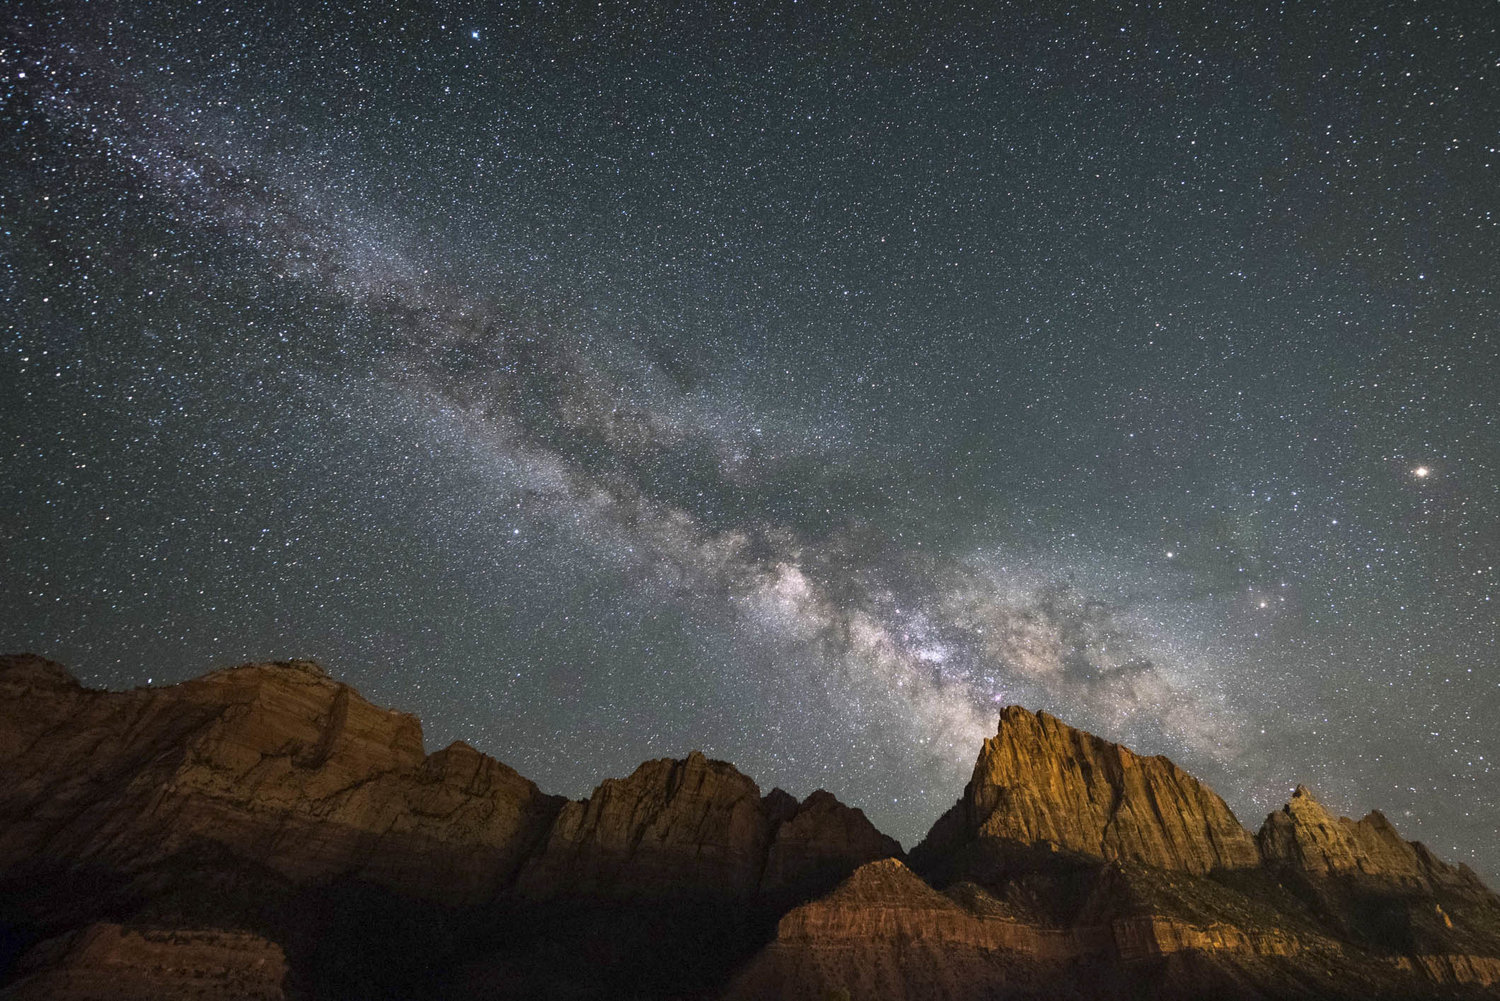 The Watchman of Zion with Milky Way Galaxy